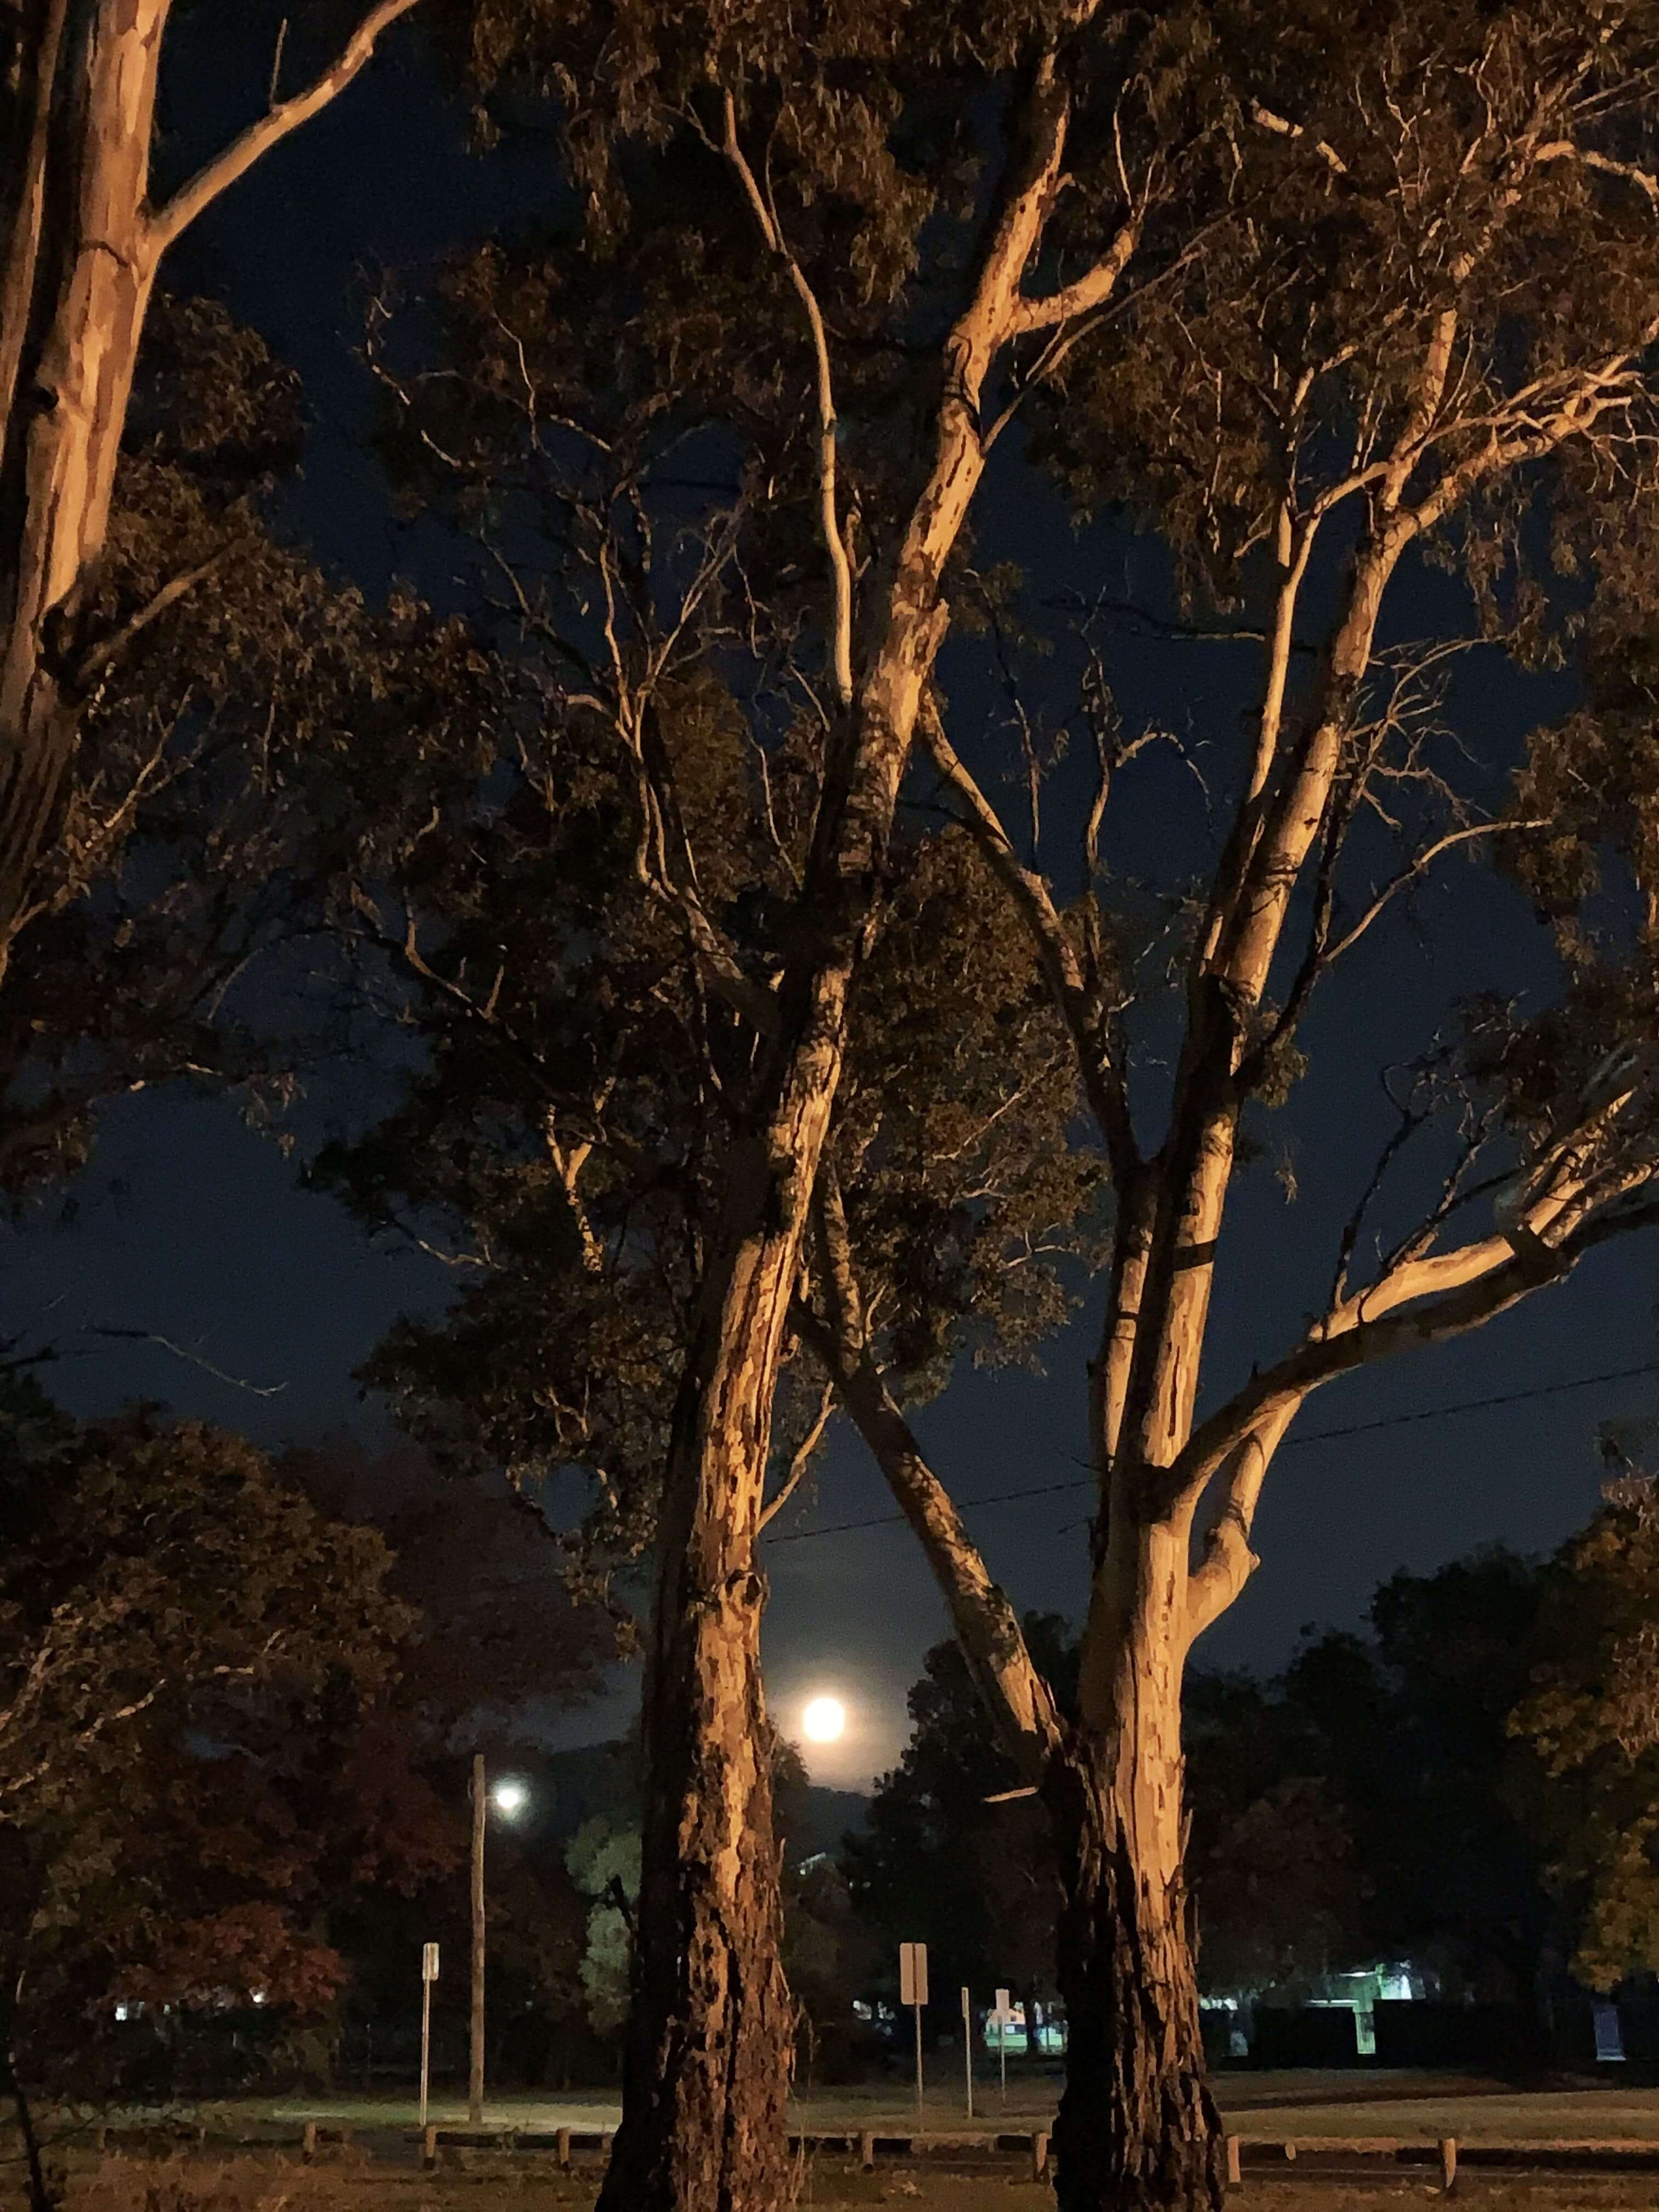 the full moon, as seen between two eucalypt tree barks